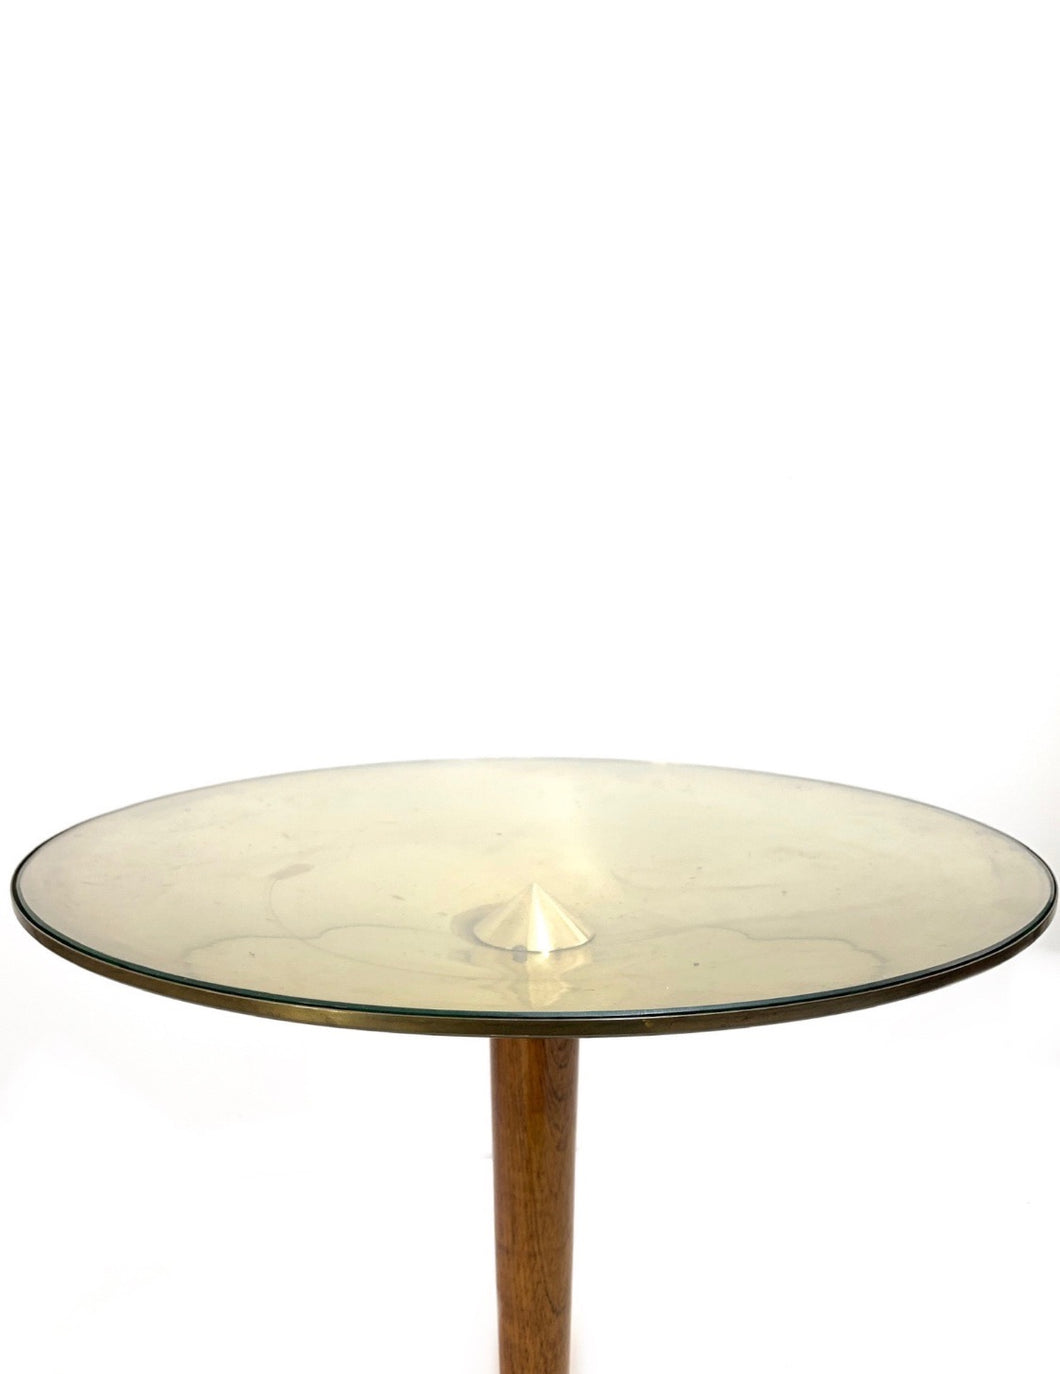 MIDCENTURY OCCASIONAL TABLE GLASS IN BRASS AND WALNUT